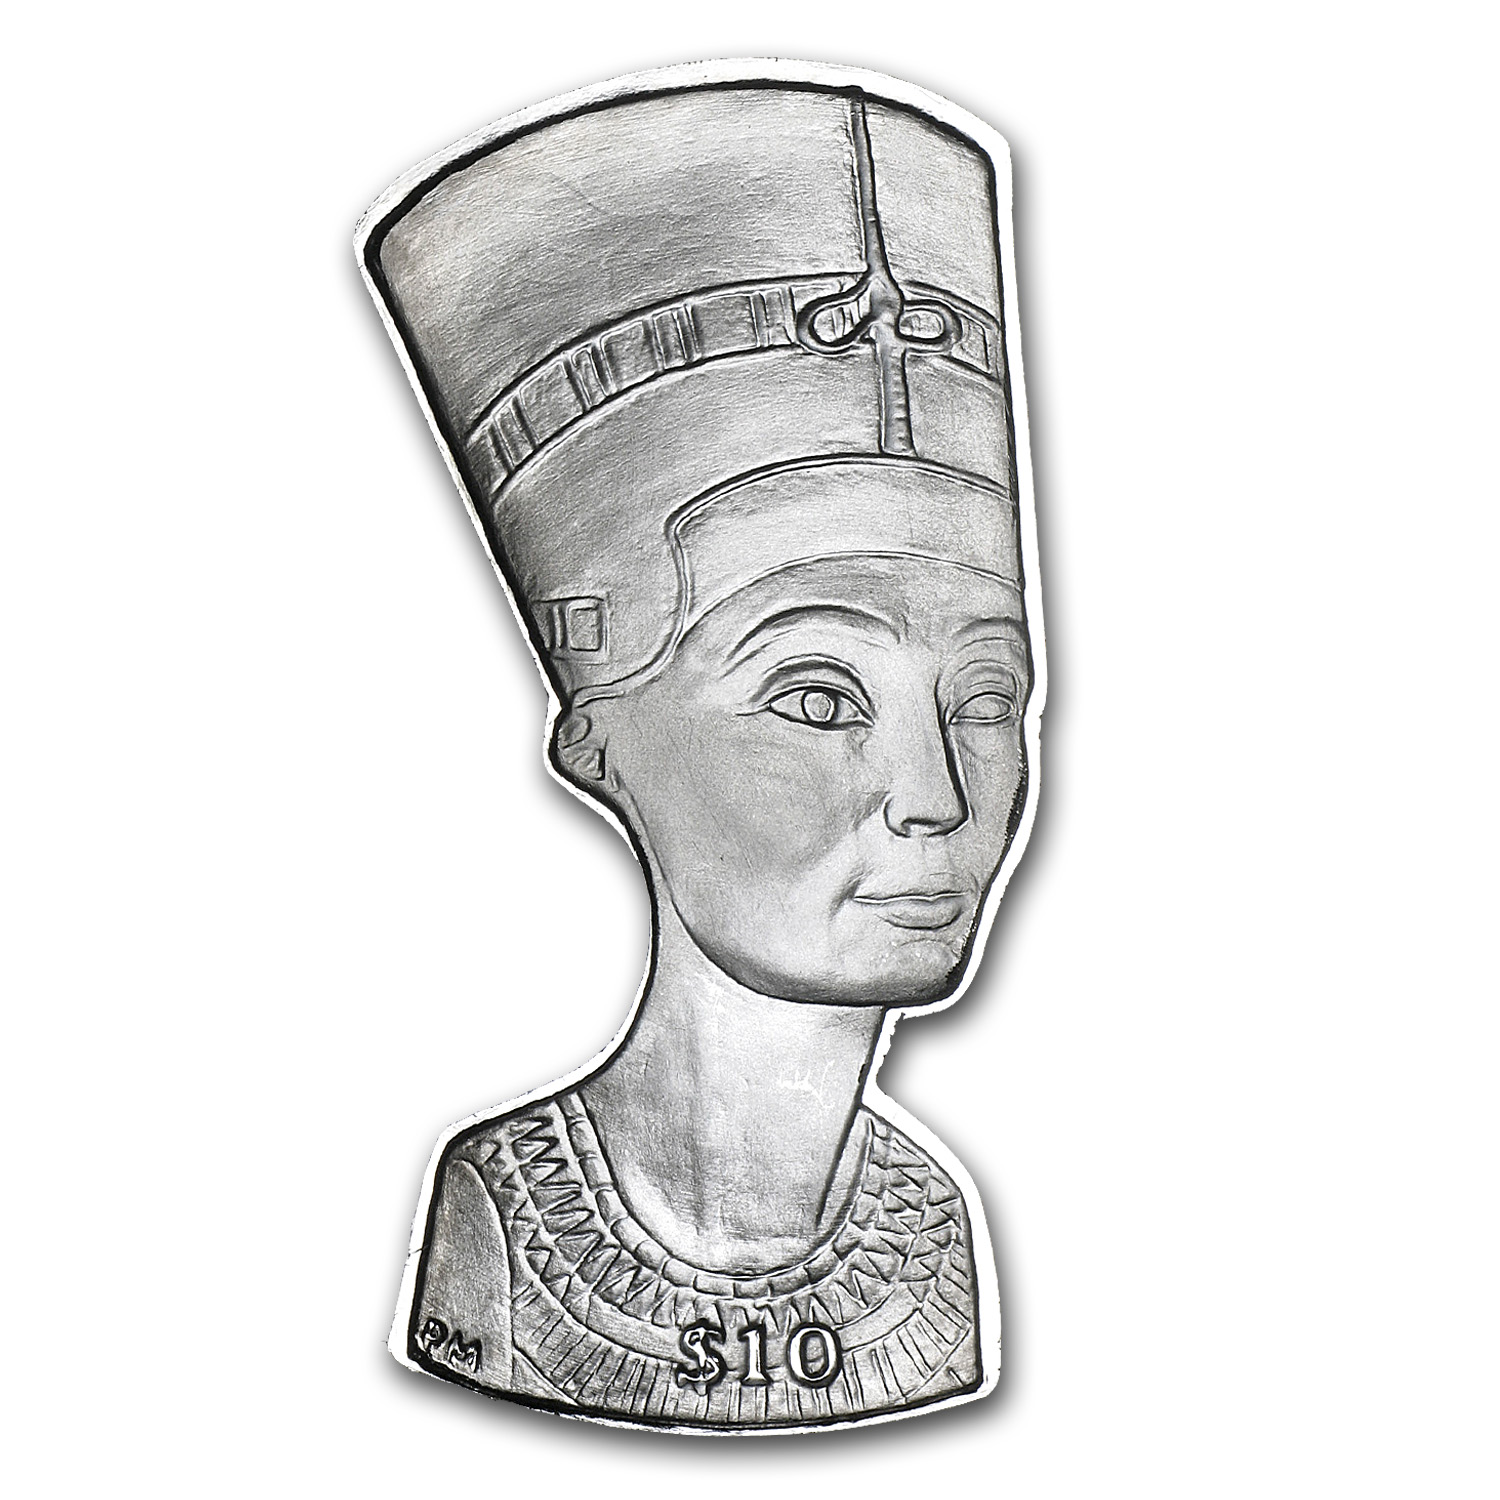 2012 British Virgin Islands Silver Nefertiti's Bust Proof